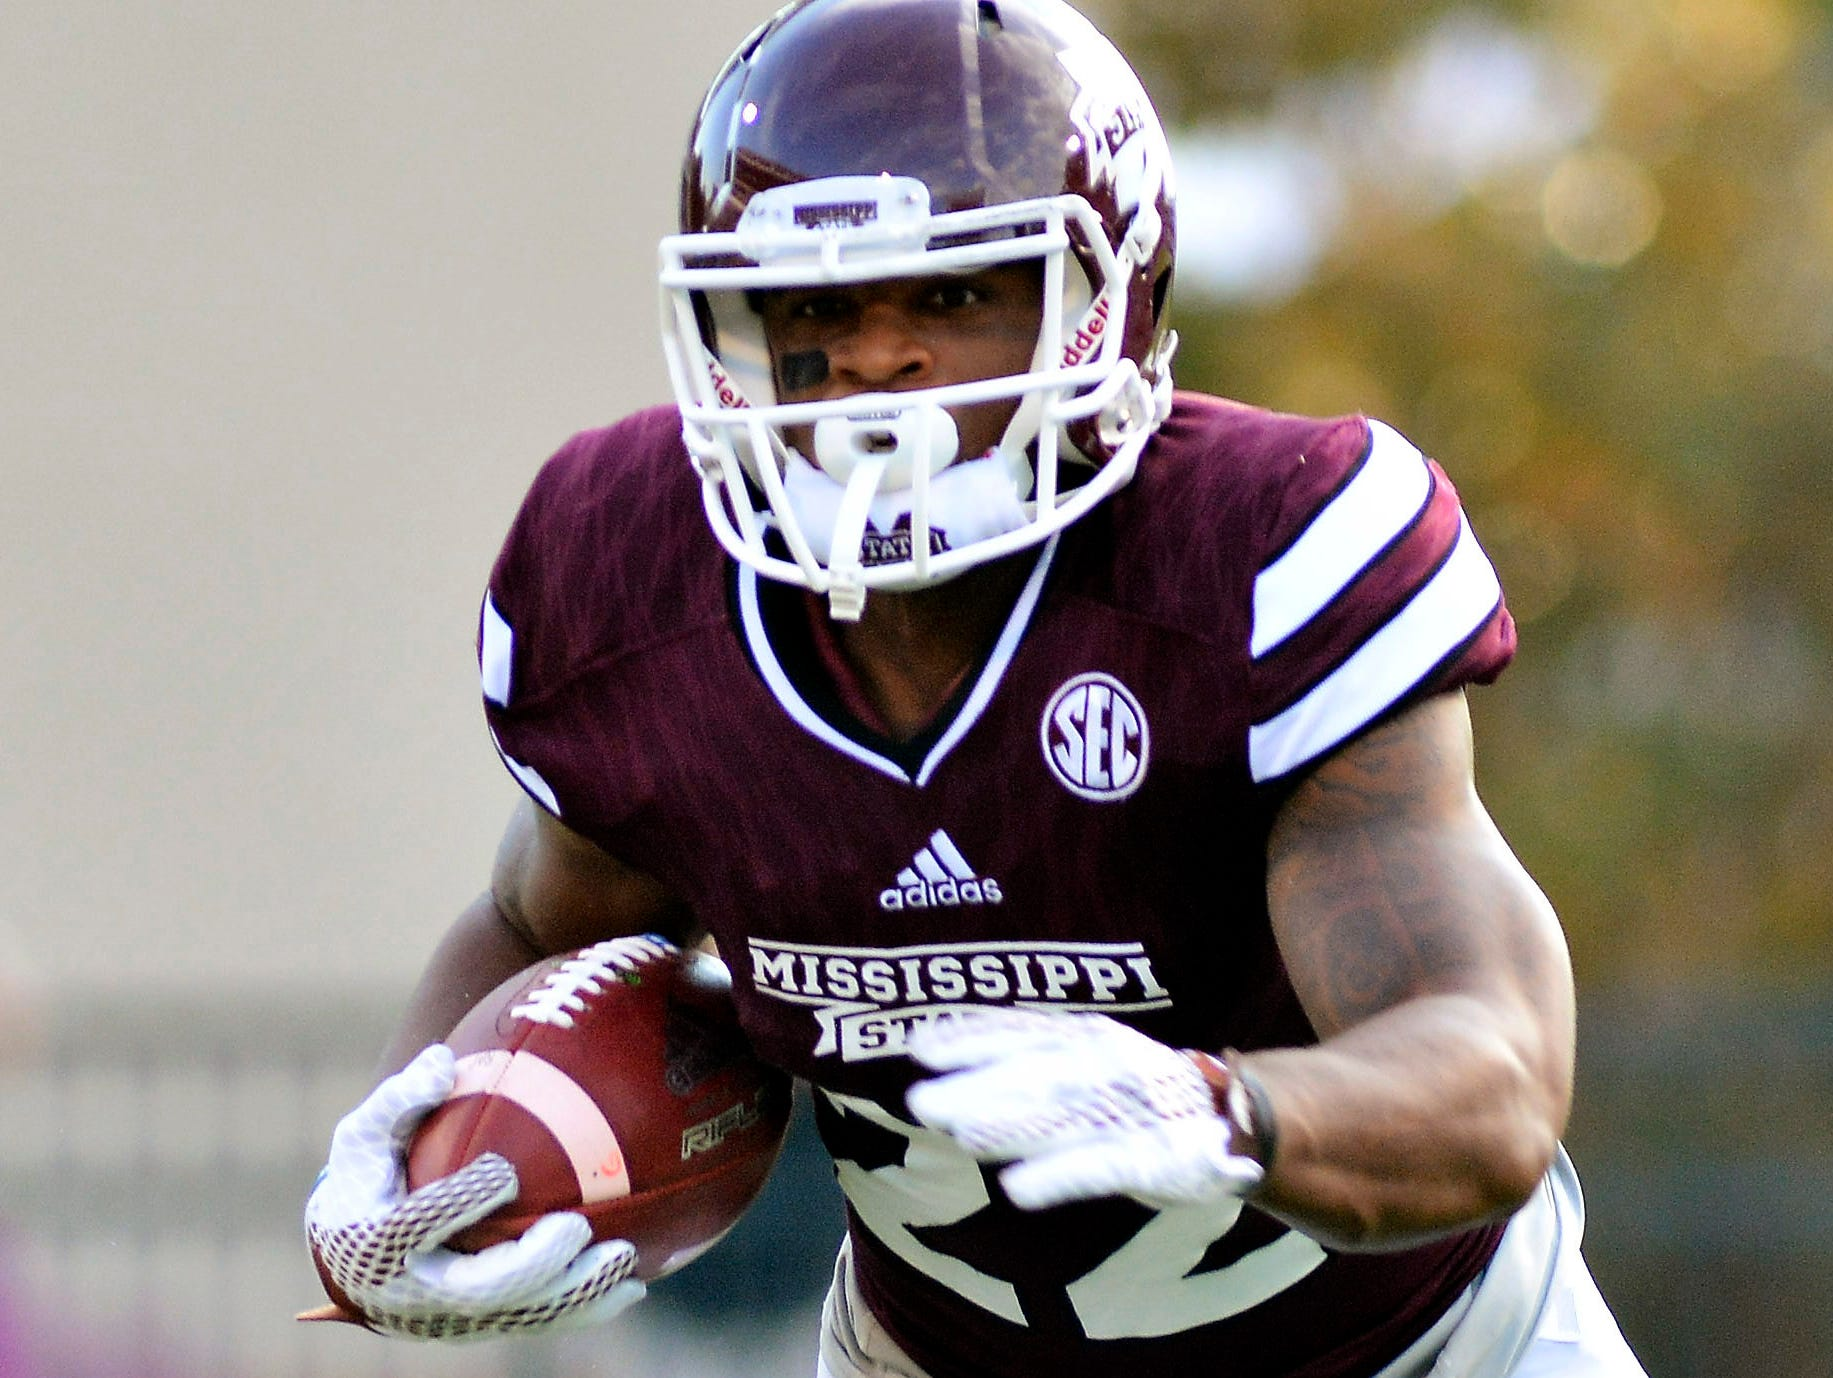 Mississippi State wide receiver Malik Dear and his team are just outside the top 25 in both polls.